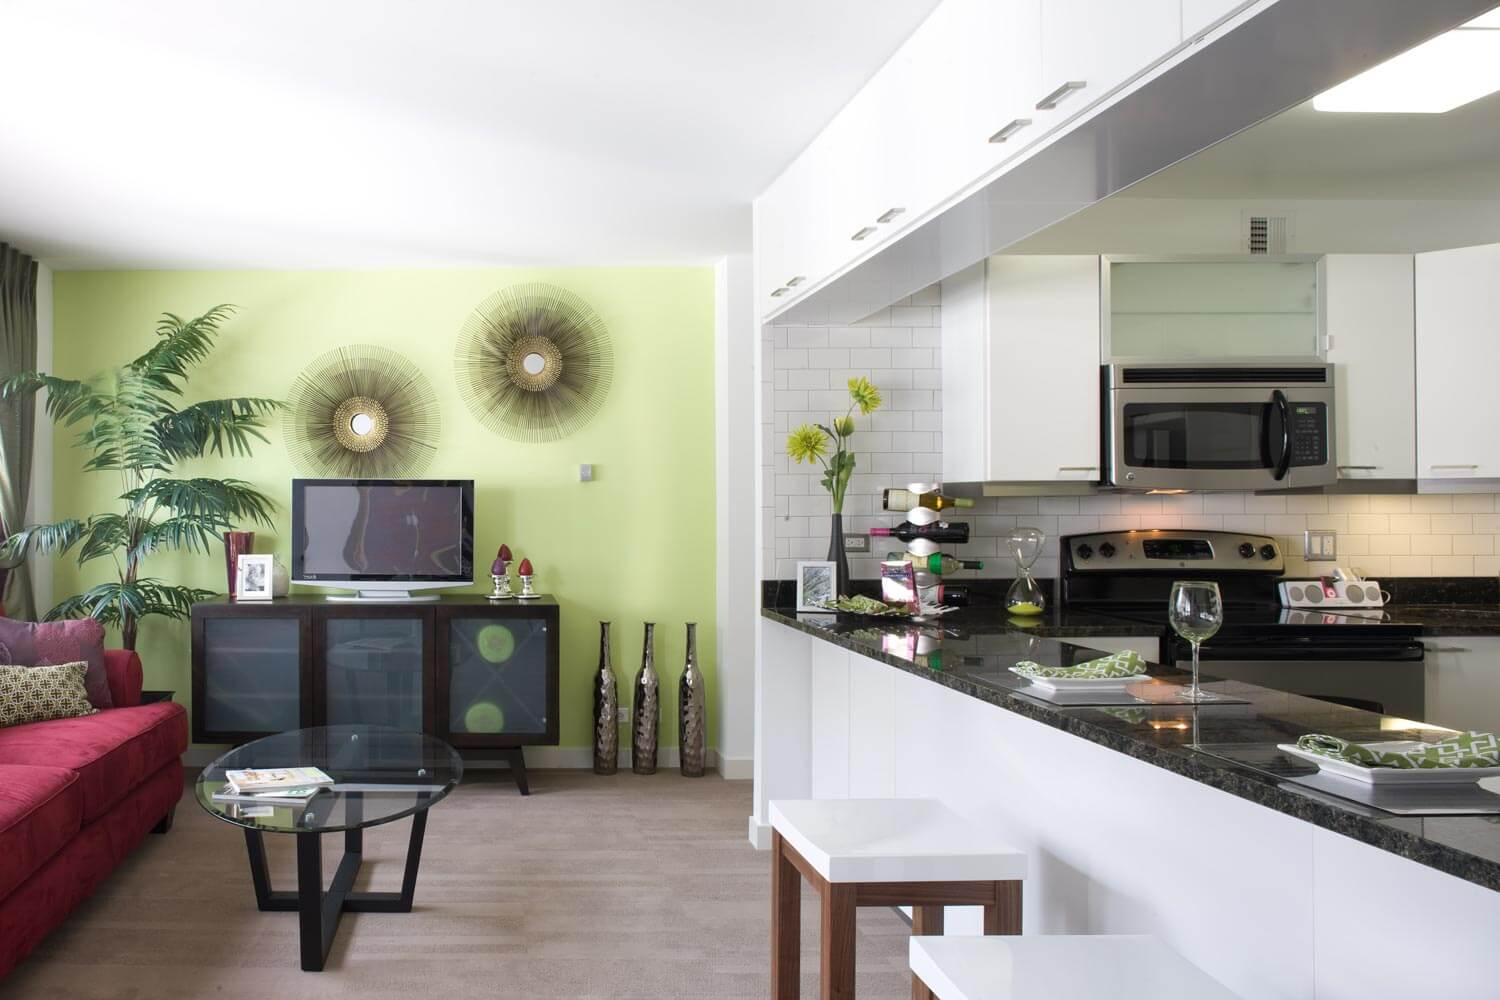 algonquin-apartments-for-rent-in-chicago-kitchen-living-room